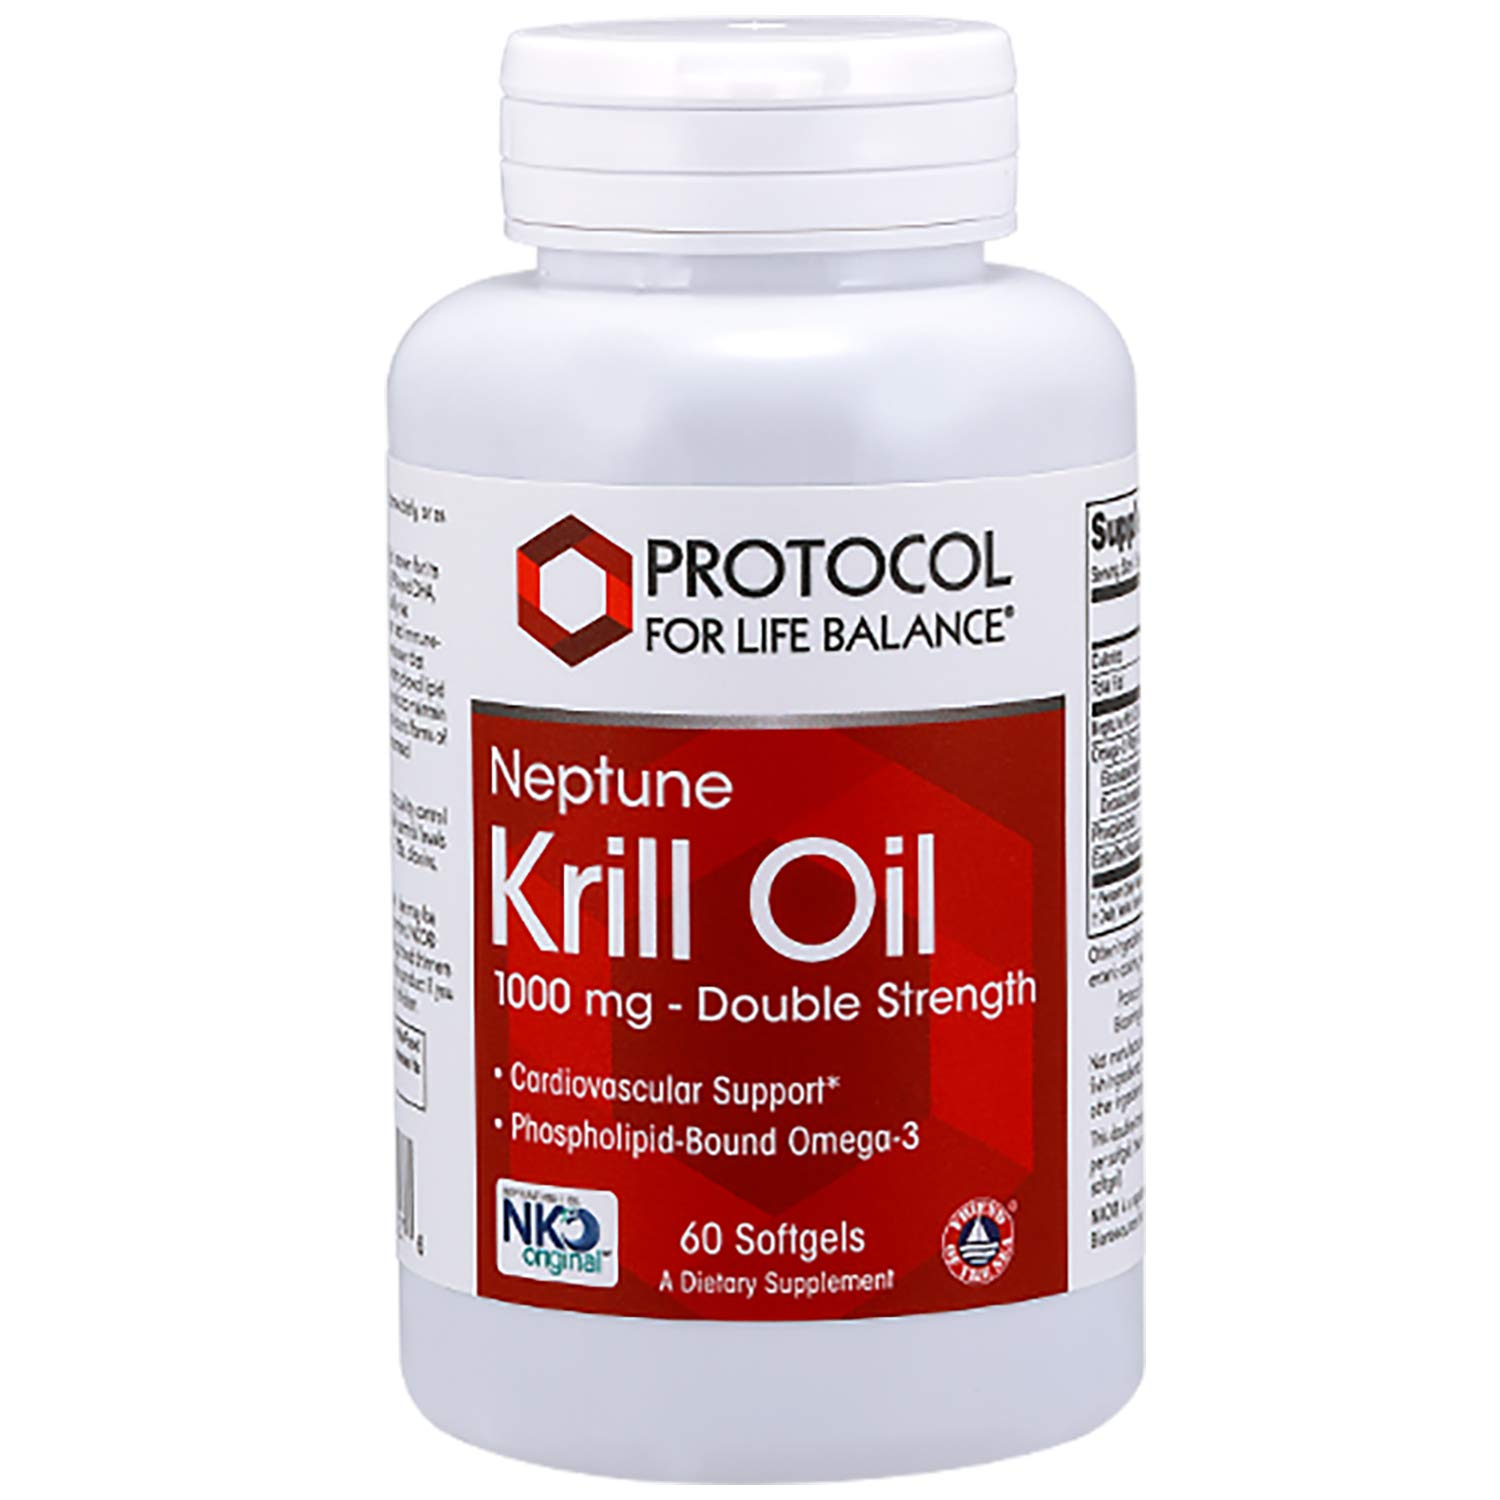 Protocol For Life Balance - Neptune Krill Oil 1,000 mg (Double Strength) - EPA, DHA, High for Cardiovascular, Immune, and Joint Support, Contaminant Free - 60 Softgels